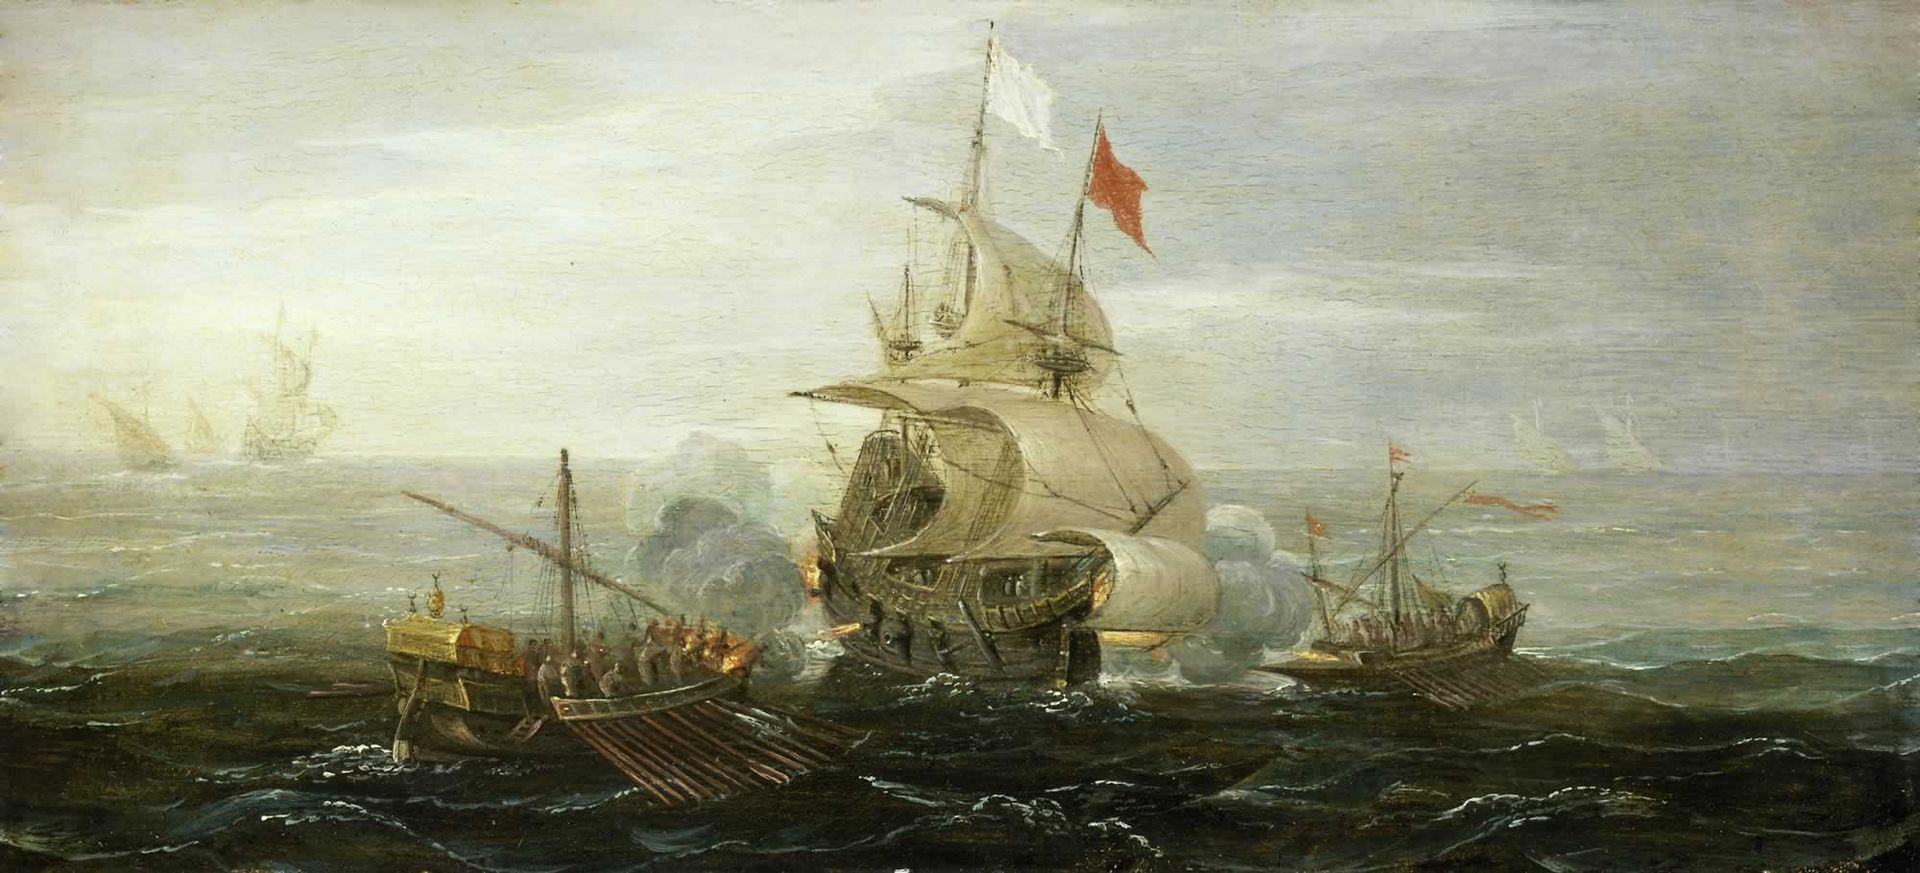 piracy in a contested periphery emergence of the modern world